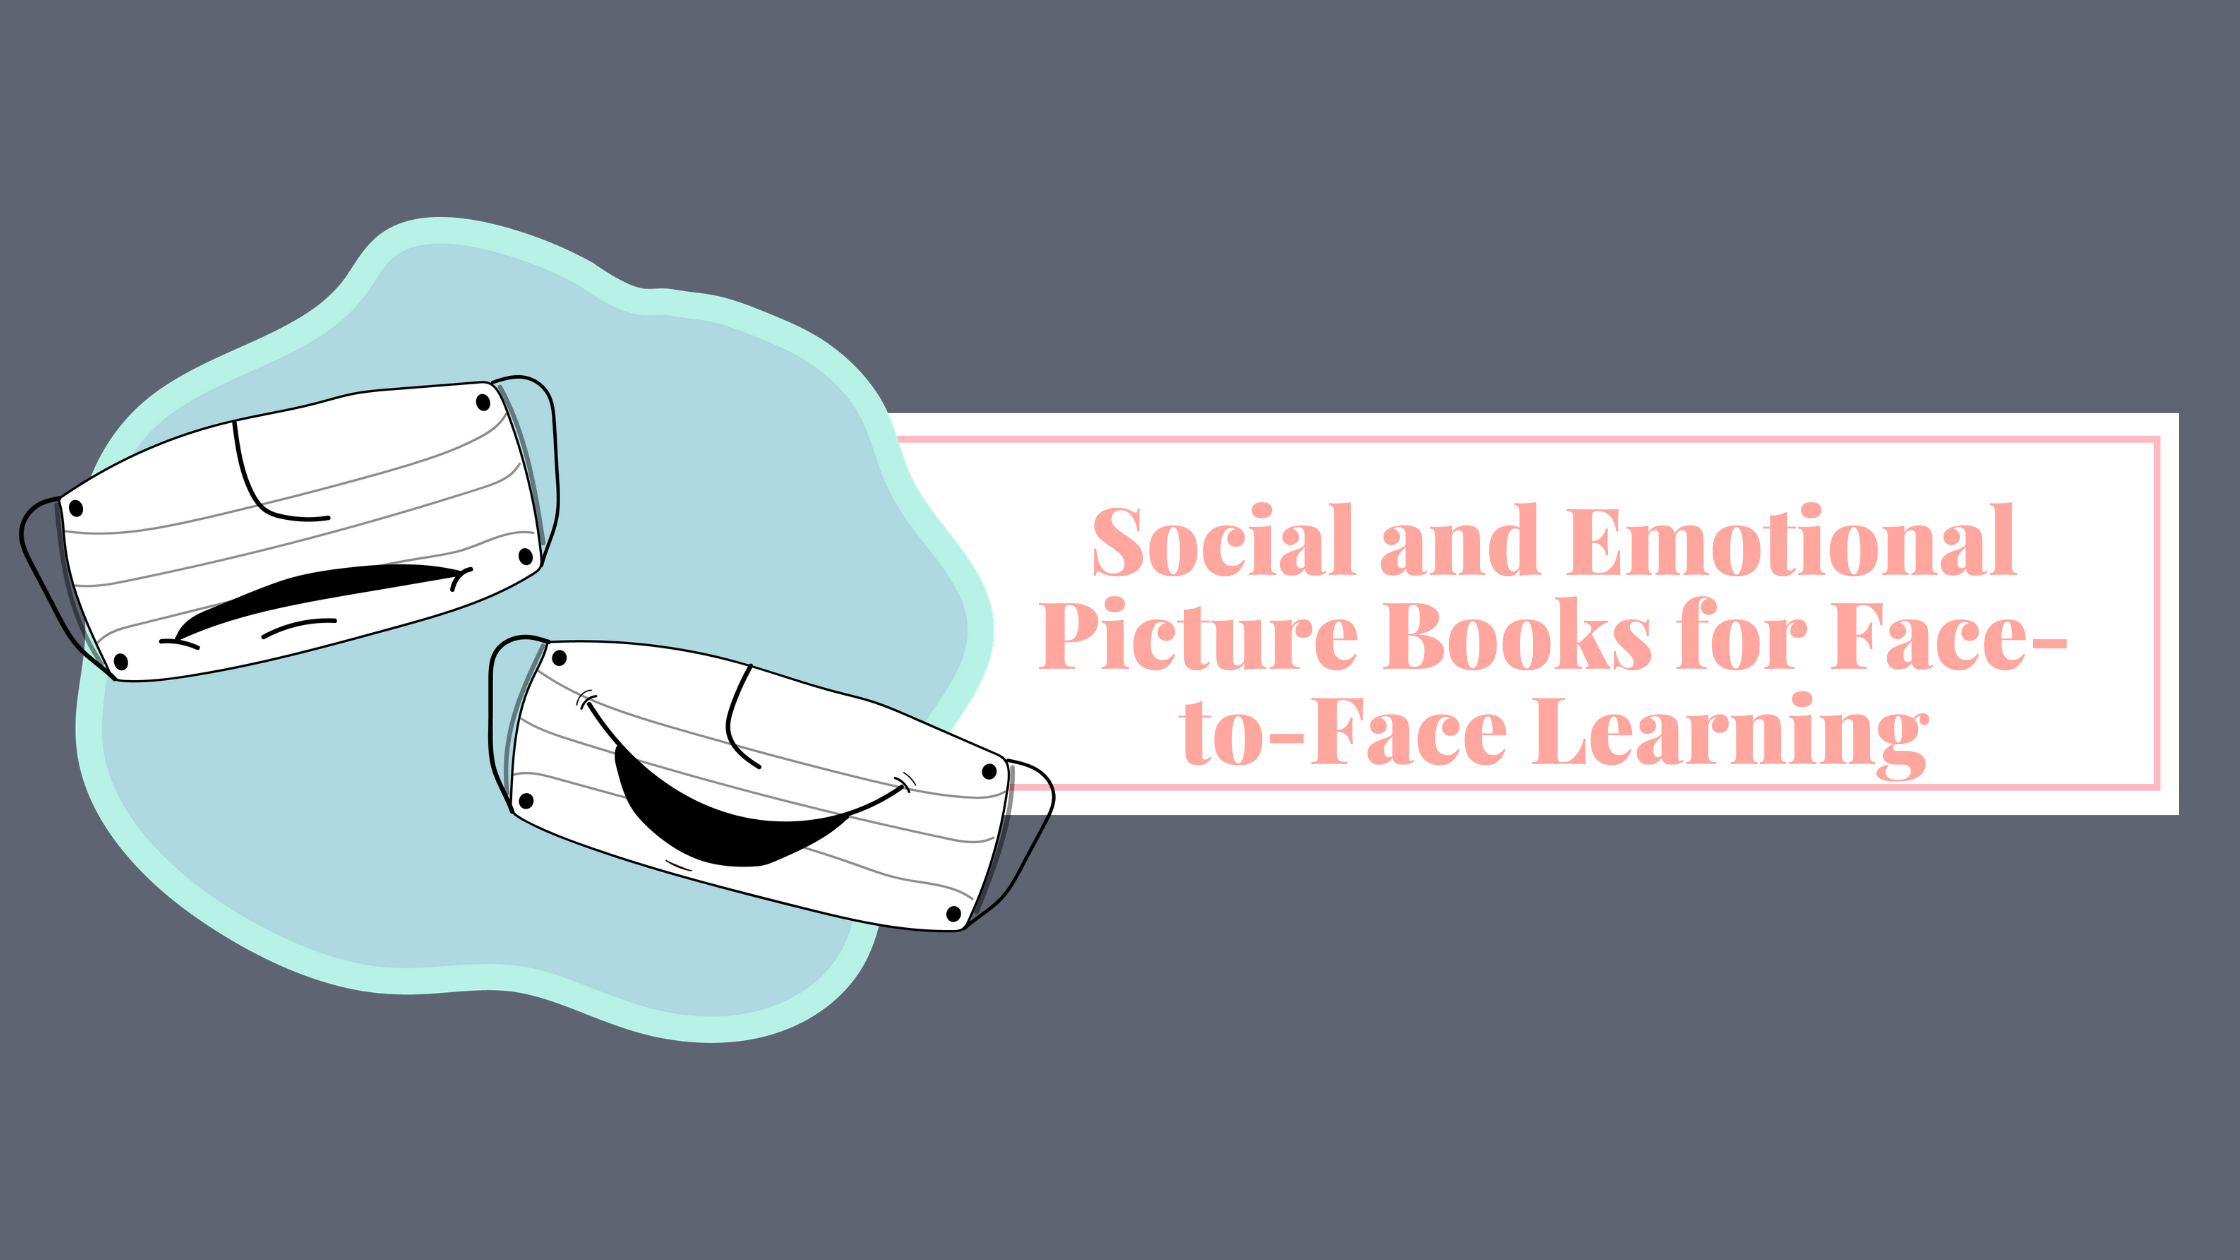 Two masks are featured next to a title. One mask has a smile, while the other has a frown. The title in the image says Social and Emotional Picture Books for Face-to-Face Learning